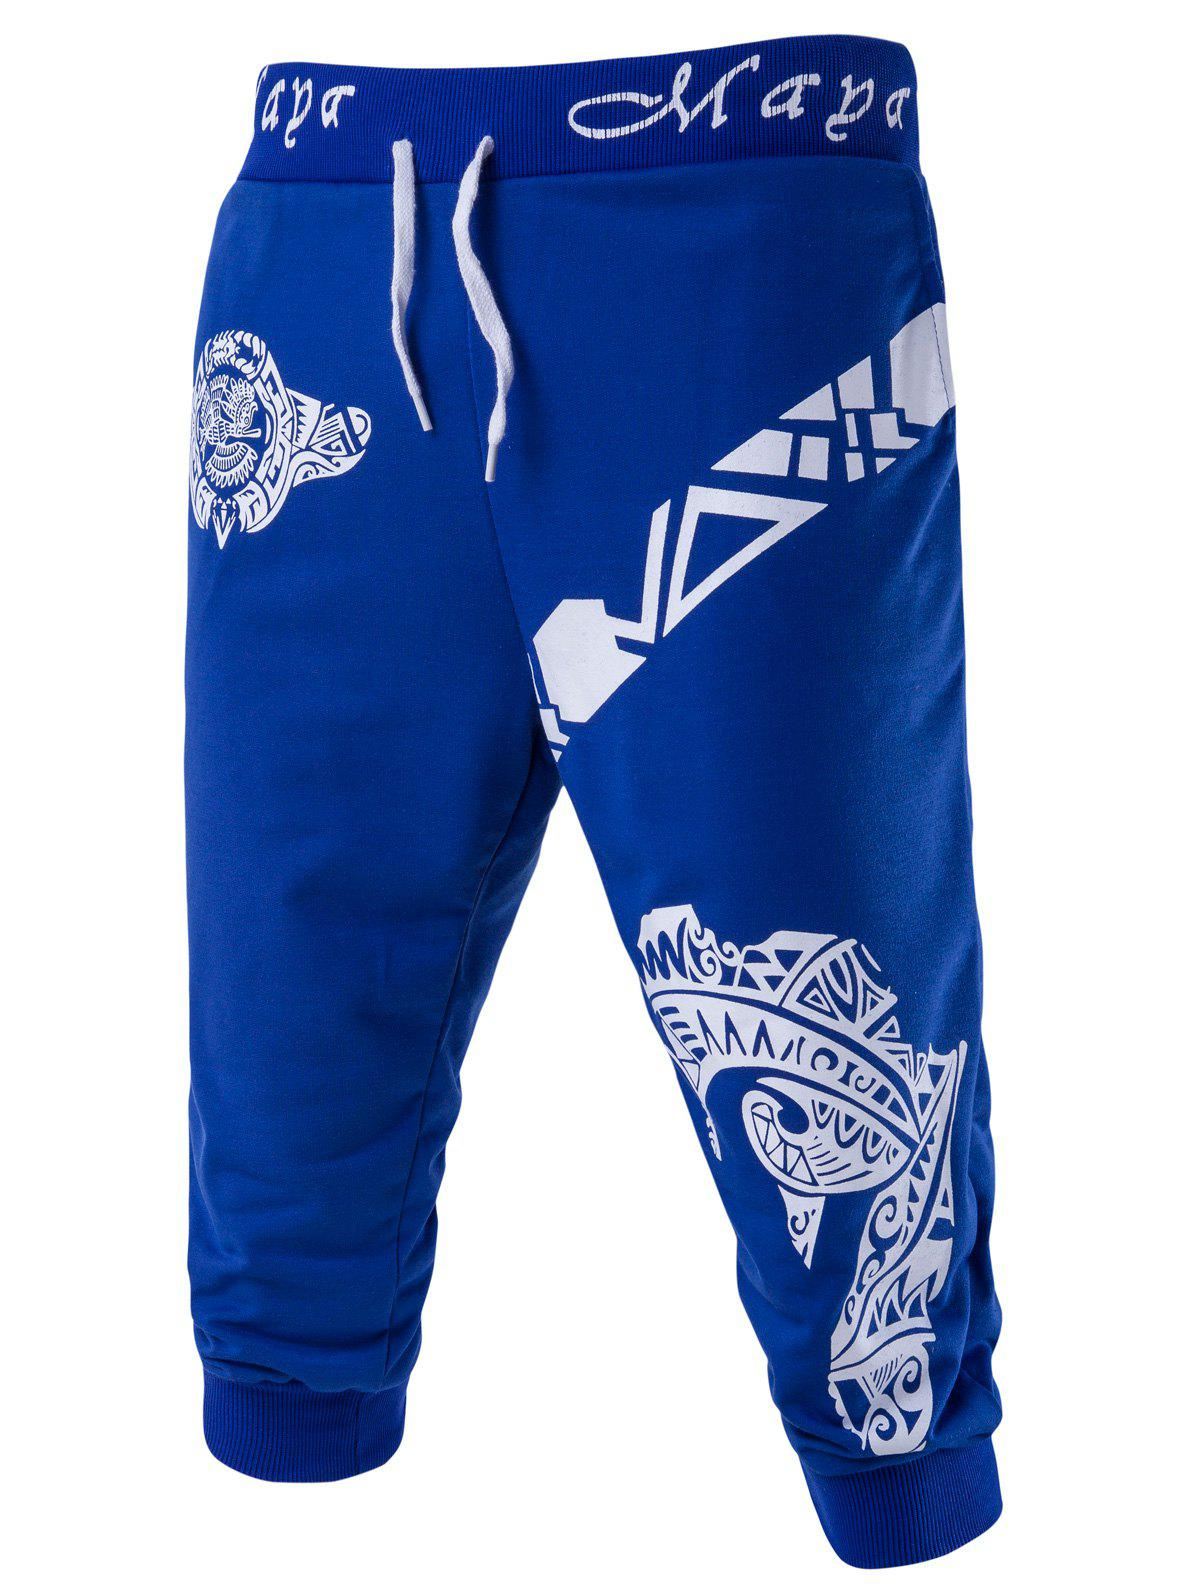 Men's Abstract Printed Solid Color Lace-Up Shorts - BLUE M